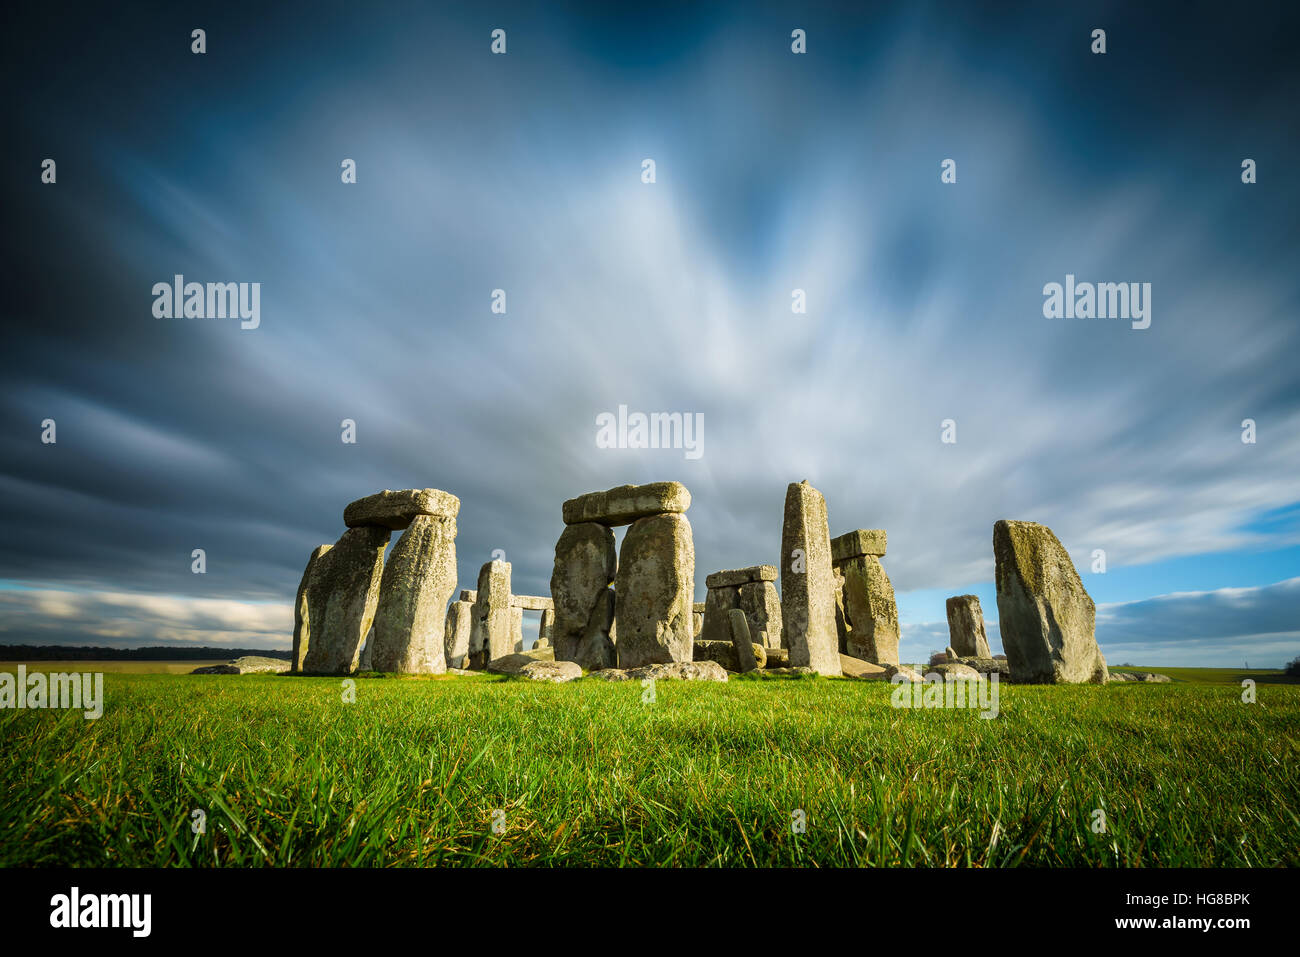 Stonehenge on a sunny and windy winter day shot with long exposure. Amesbury, United Kingdom. - Stock Image